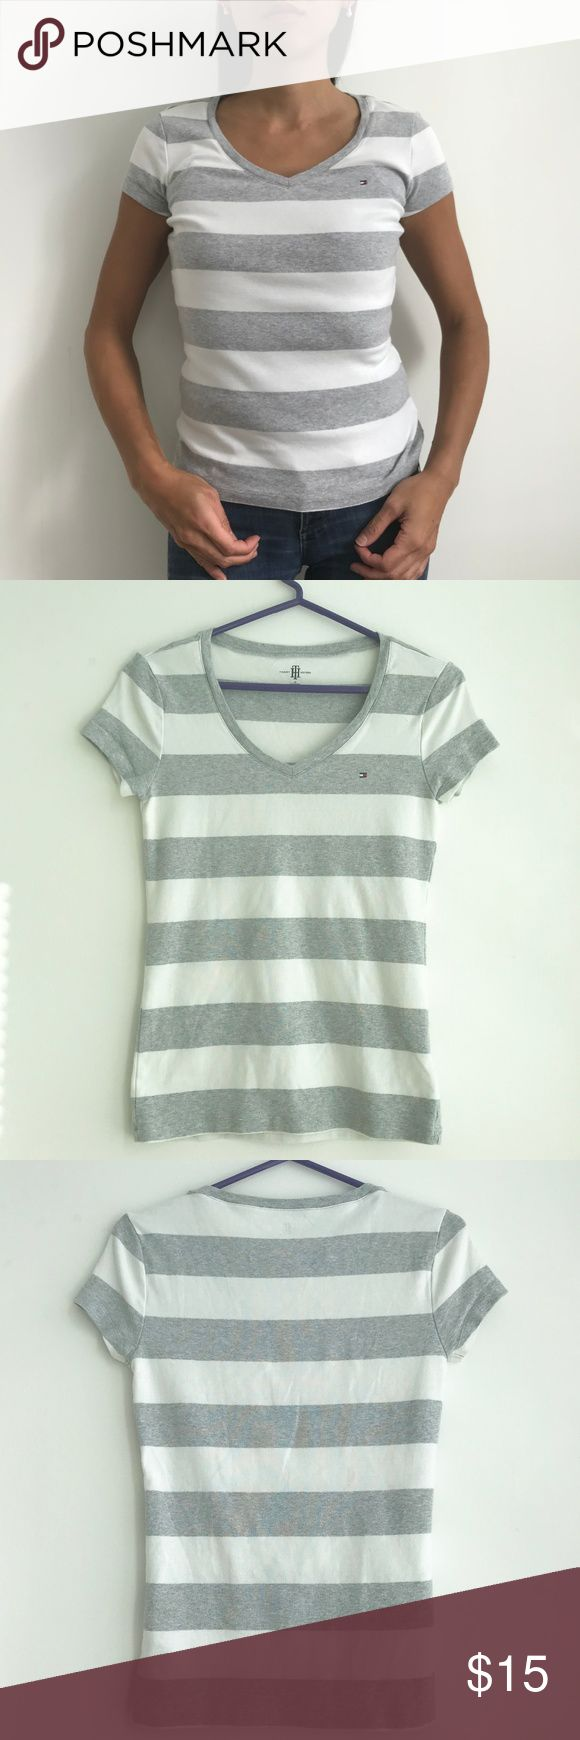 Grey & White Stripe V Neck Tee Tommy Hilfiger Size Small. 100% cotton V-neck tee with Tommy Hilfiger flag logo. 22 inches long. 15 inches from armpit to armpit laying flat. Tommy Hilfiger Tops Tees - Short Sleeve